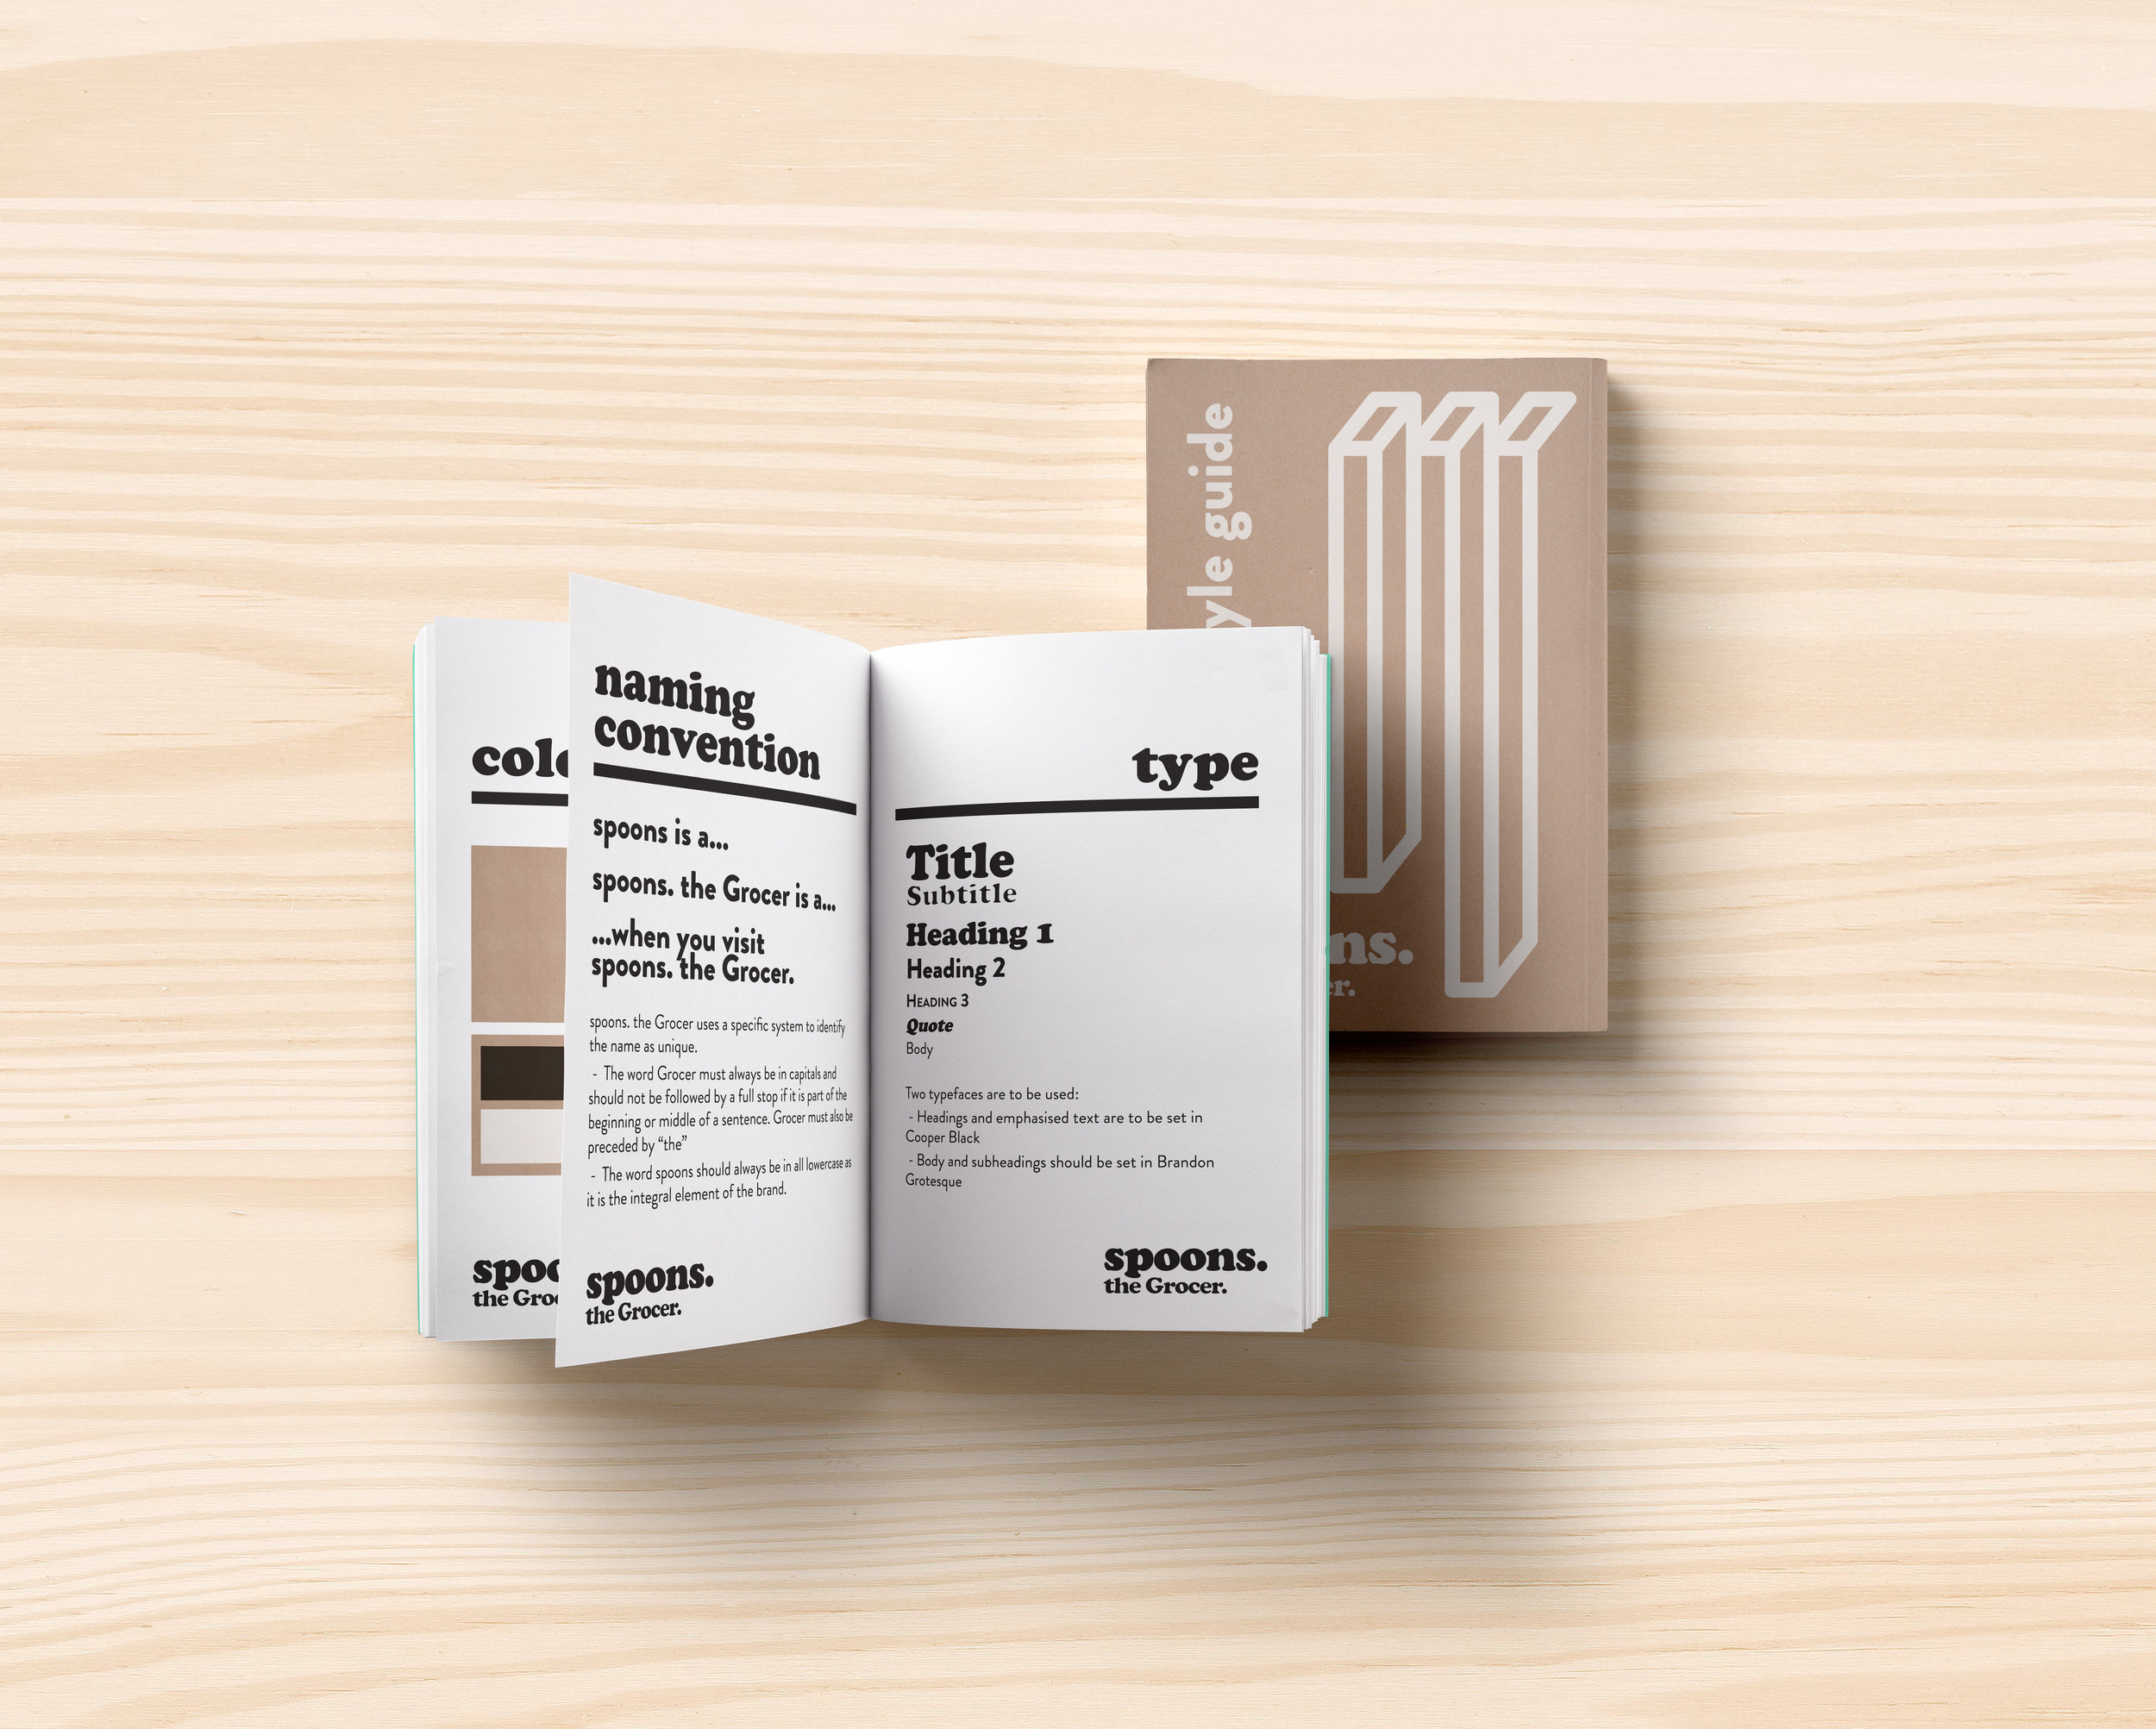 spoons-the-grocer-style-guide-mockup-sam-blomley-branding-1